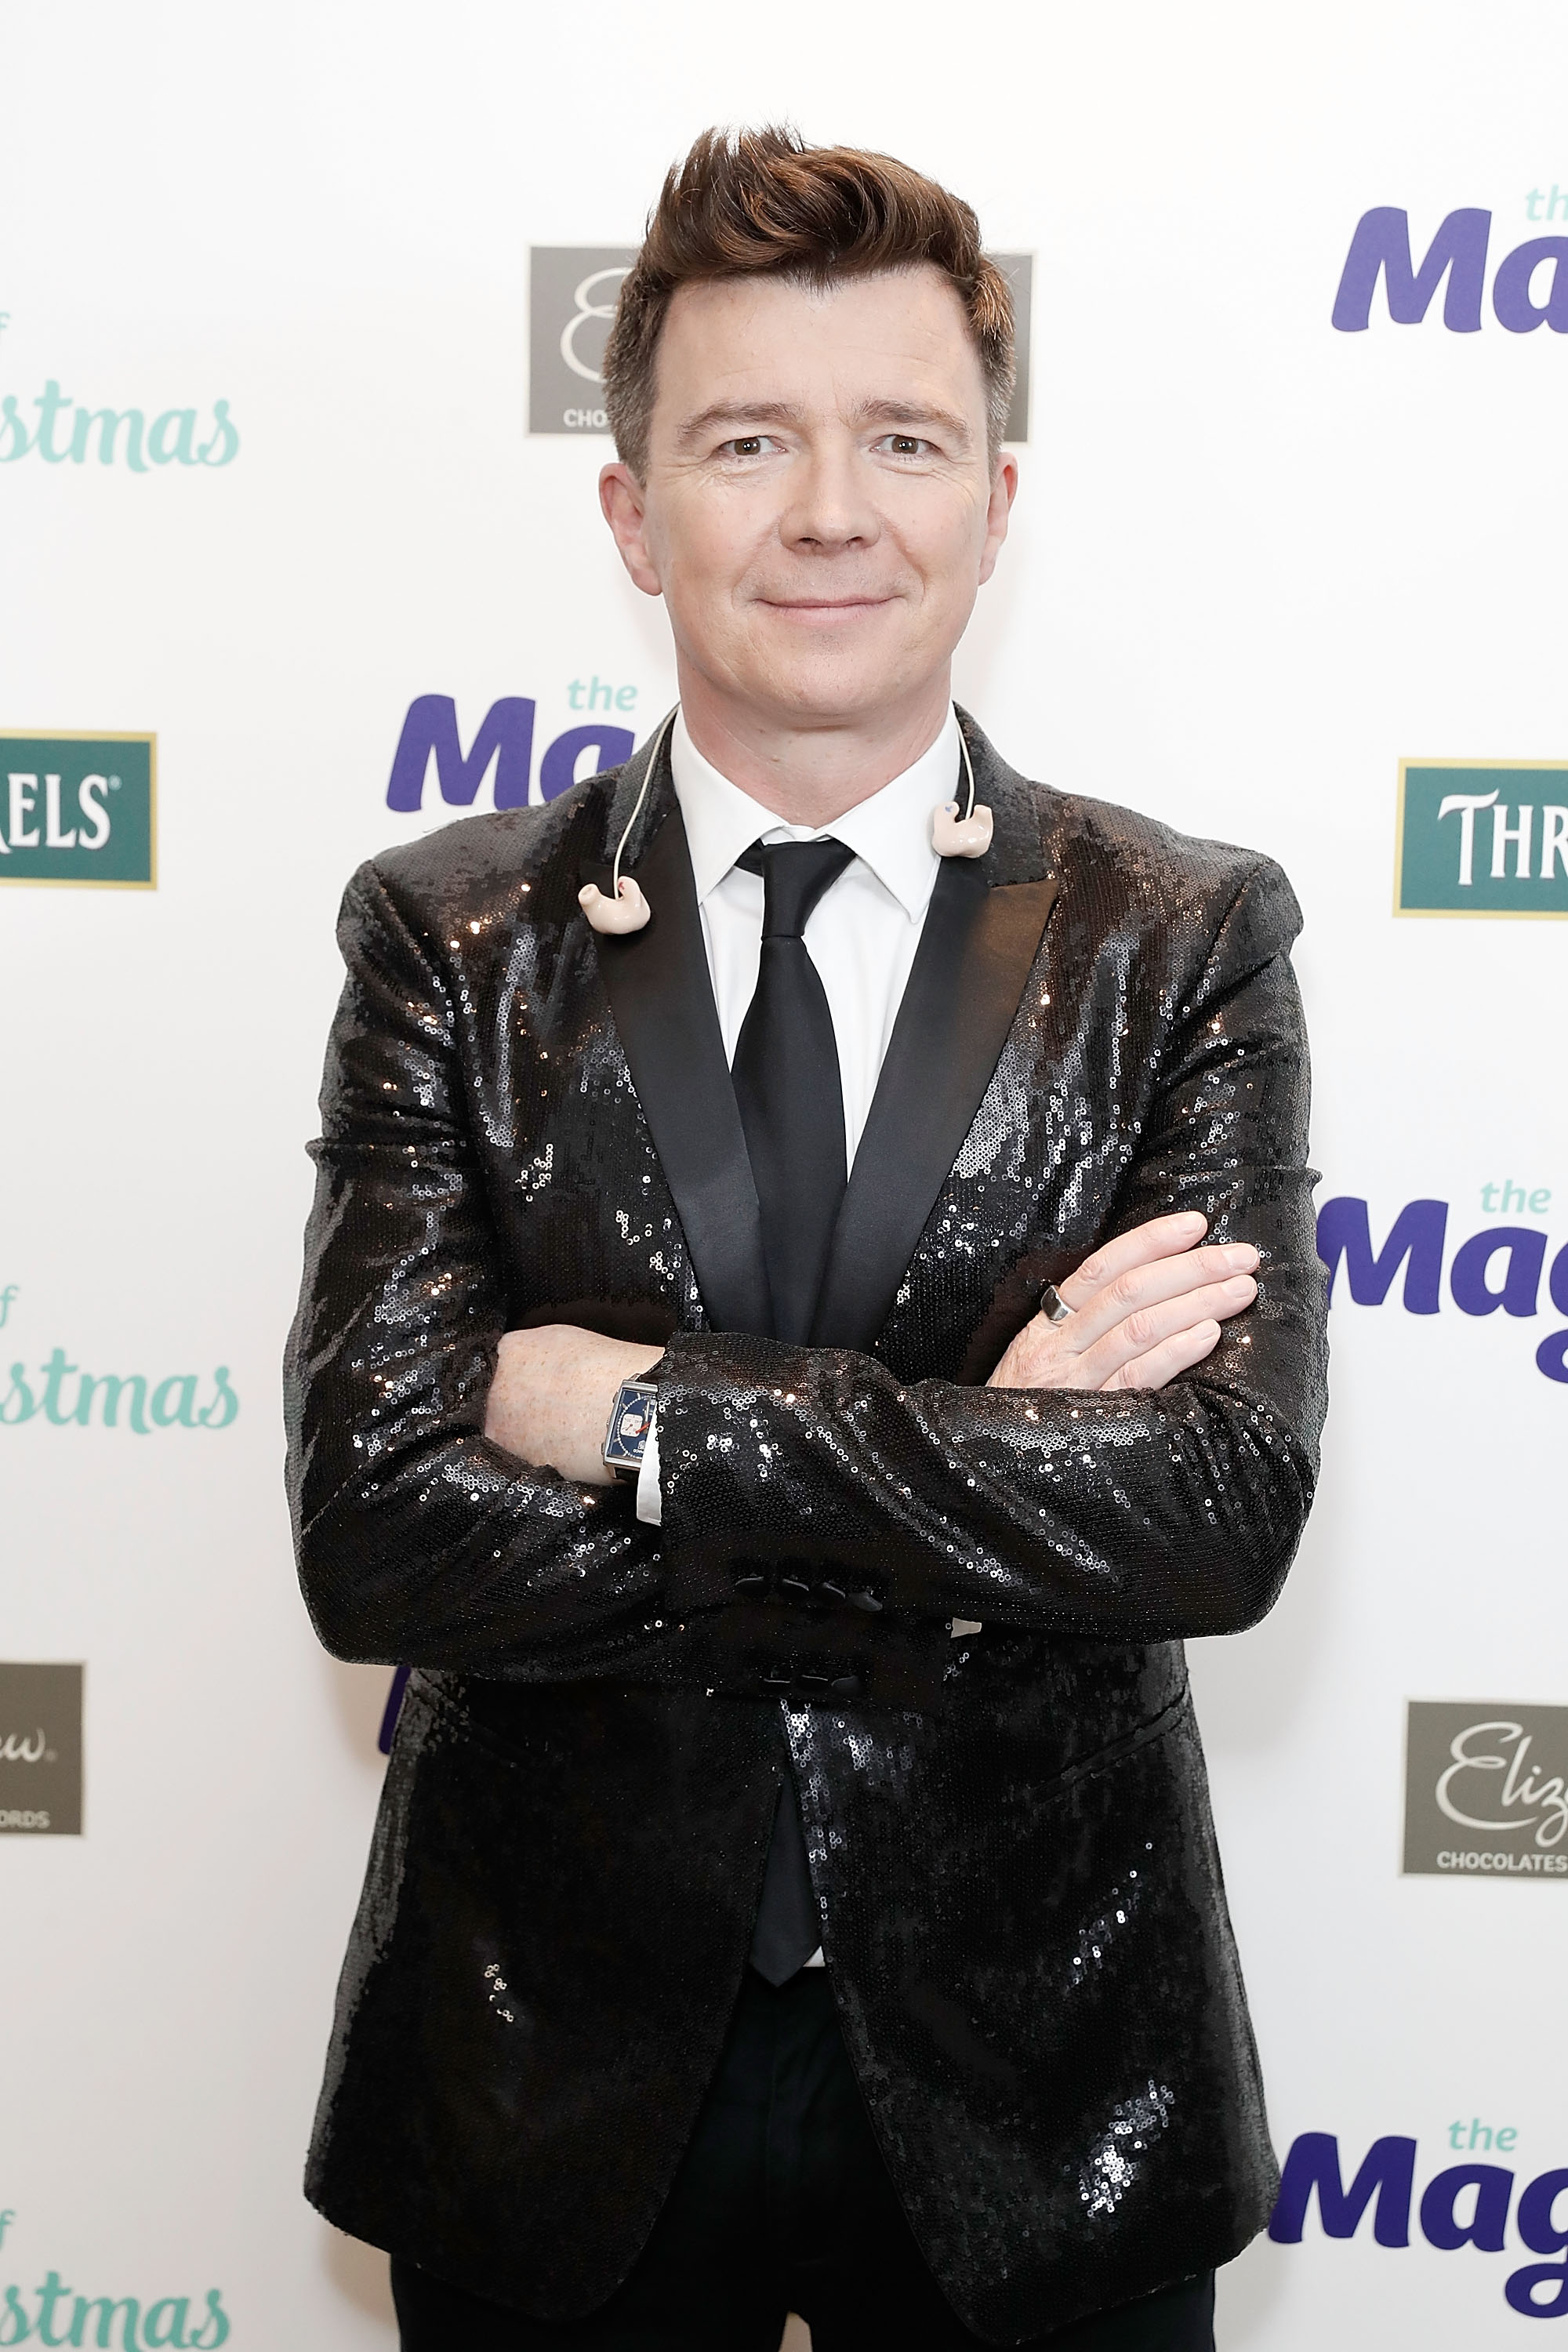 LONDON, ENGLAND - NOVEMBER 27:  Rick Astley attends The Magic of Christmas at London Palladium on November 27, 2016 in London, England.  (Photo by John Phillips/John Phillips/Getty Images)